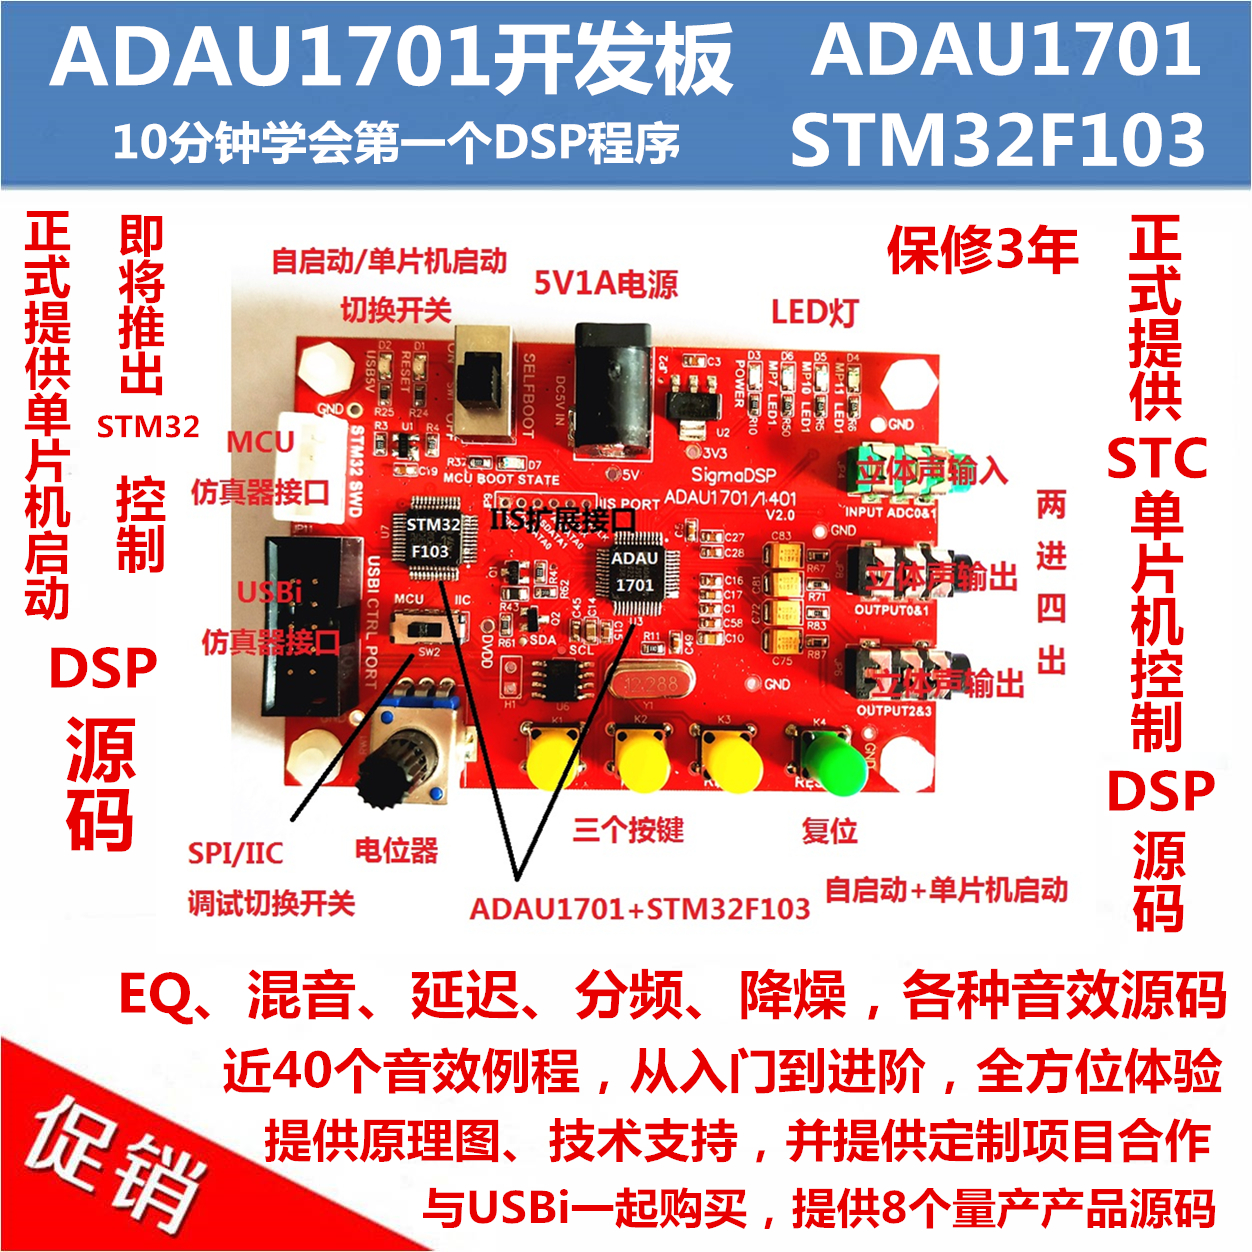 Sigmadsp Development Board openadsp Open Source Community Liberal Adau1701 Development Board Dsp Mcu